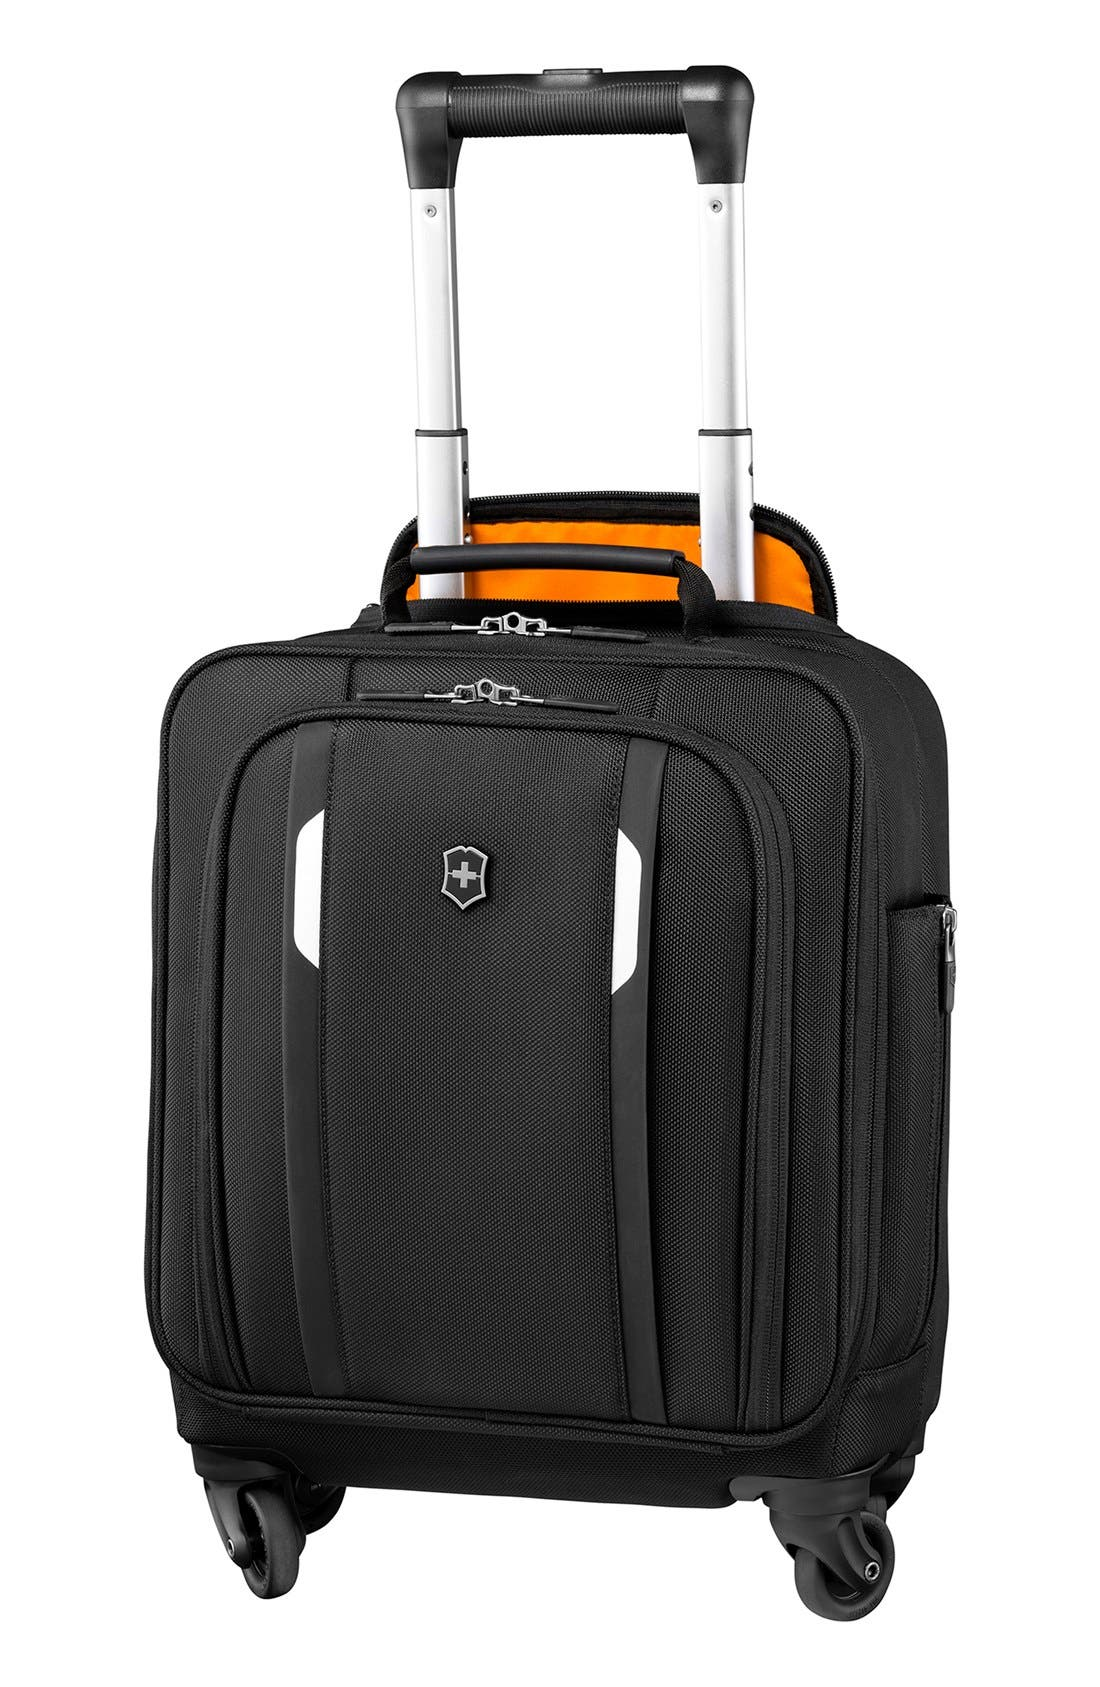 Victorinox Swiss Army® 'WT 5.0' Wheeled Tote Bag